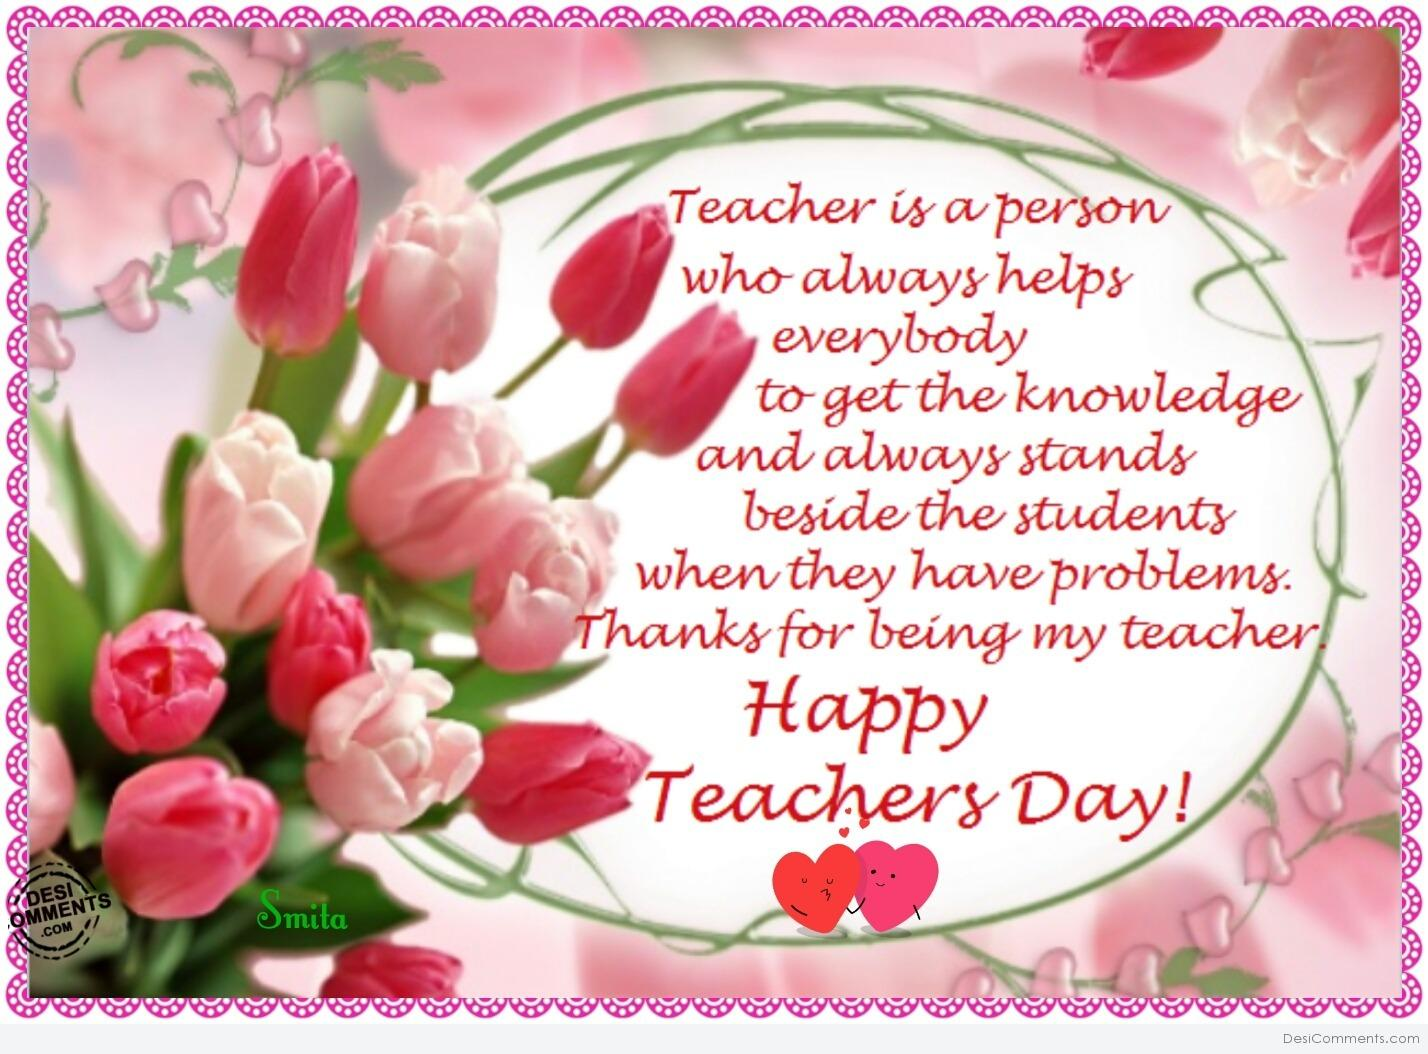 teacher day essay essay on teachers day celebration in my school  essay on teachers day celebration in my school essay essay on teachers day celebration in my